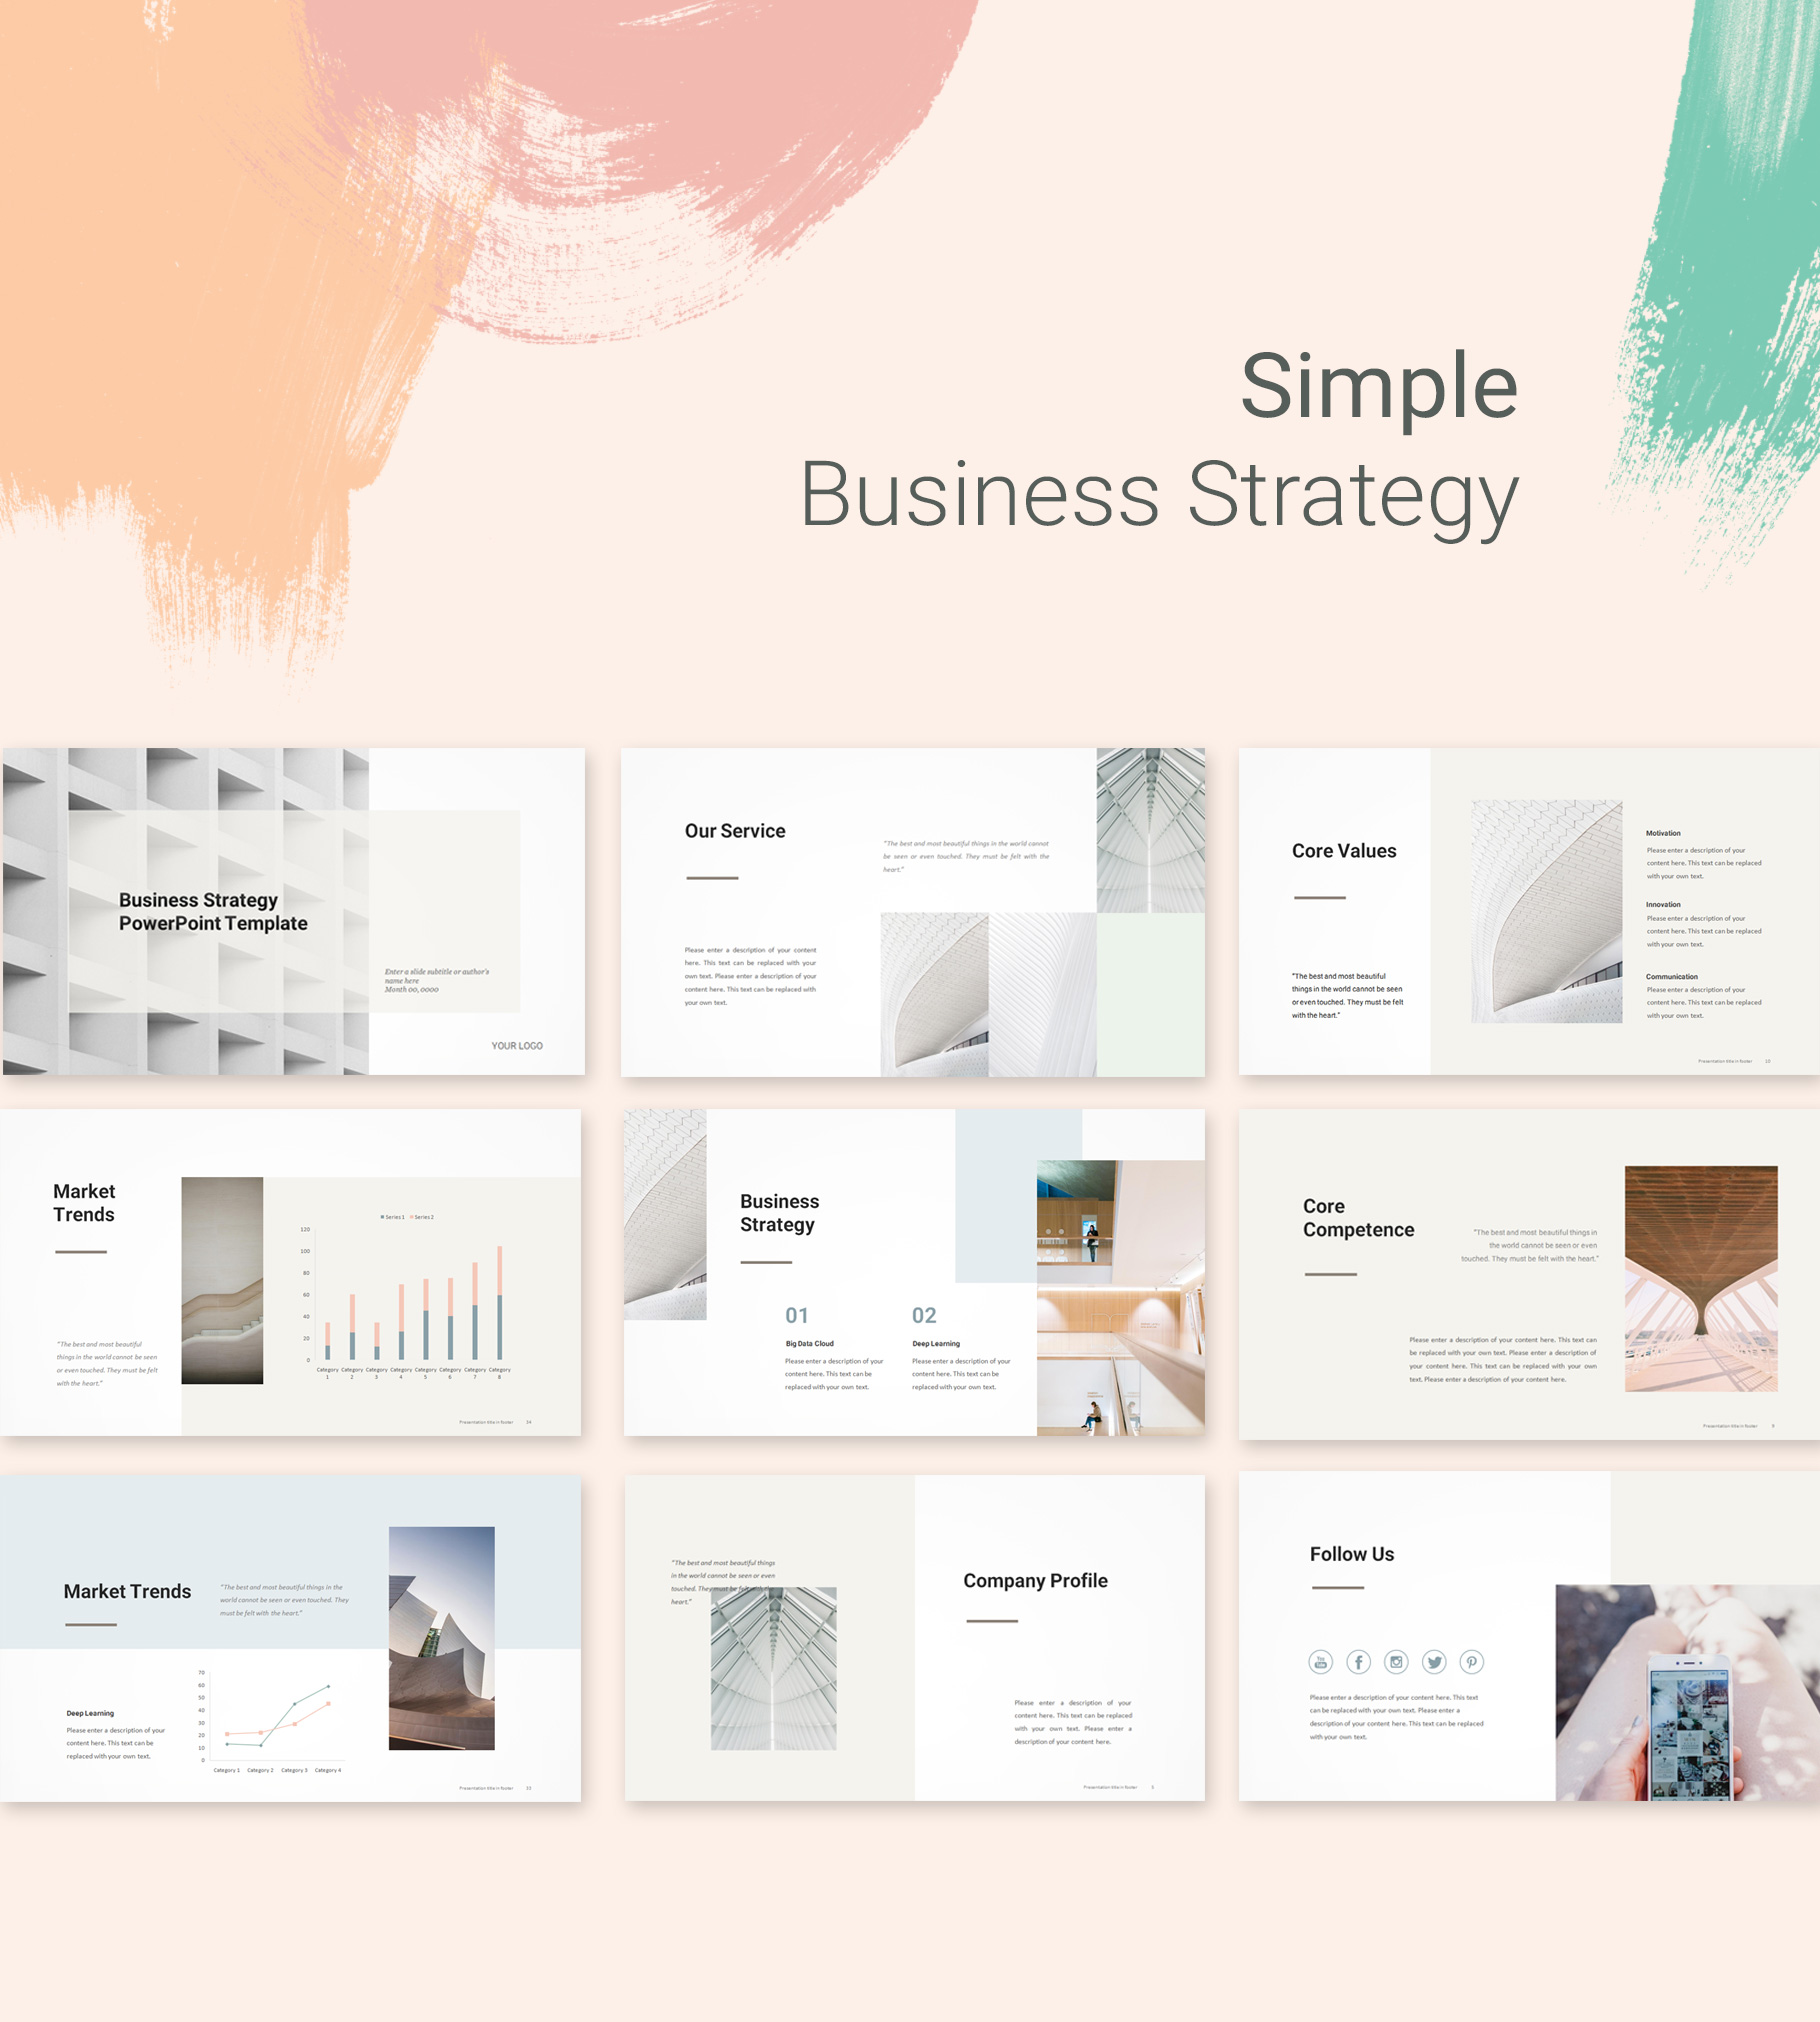 Simple Business Strategy Template Pptwear Com Download Ppt